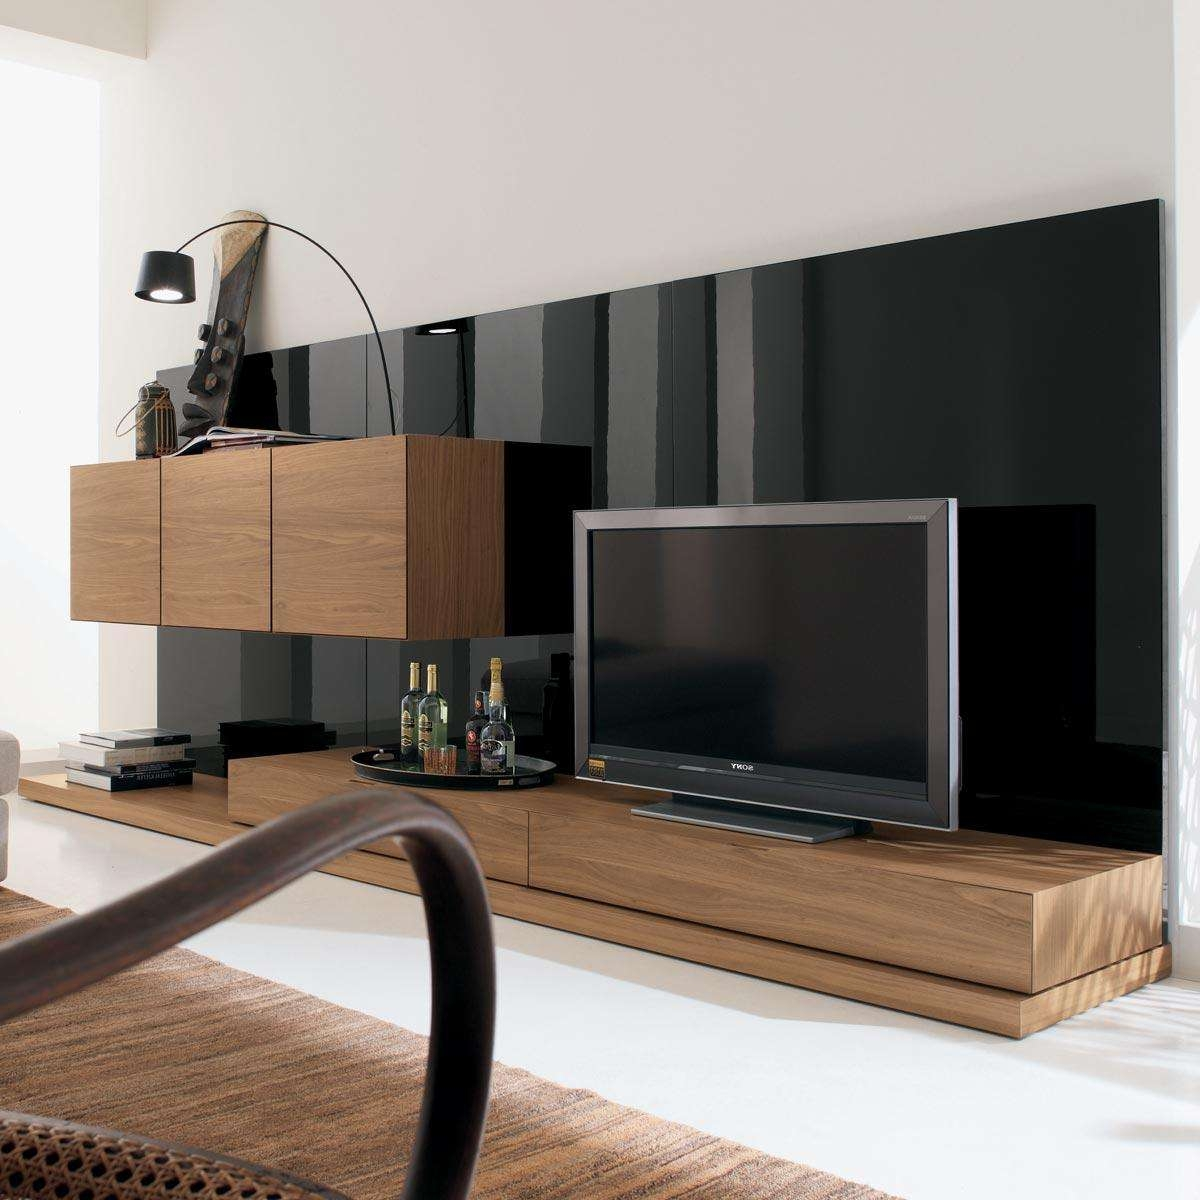 Modern Nature Wood Big Screen Tv Stand Wall Mounted Living Room Inside Long Tv Stands Furniture (View 12 of 15)